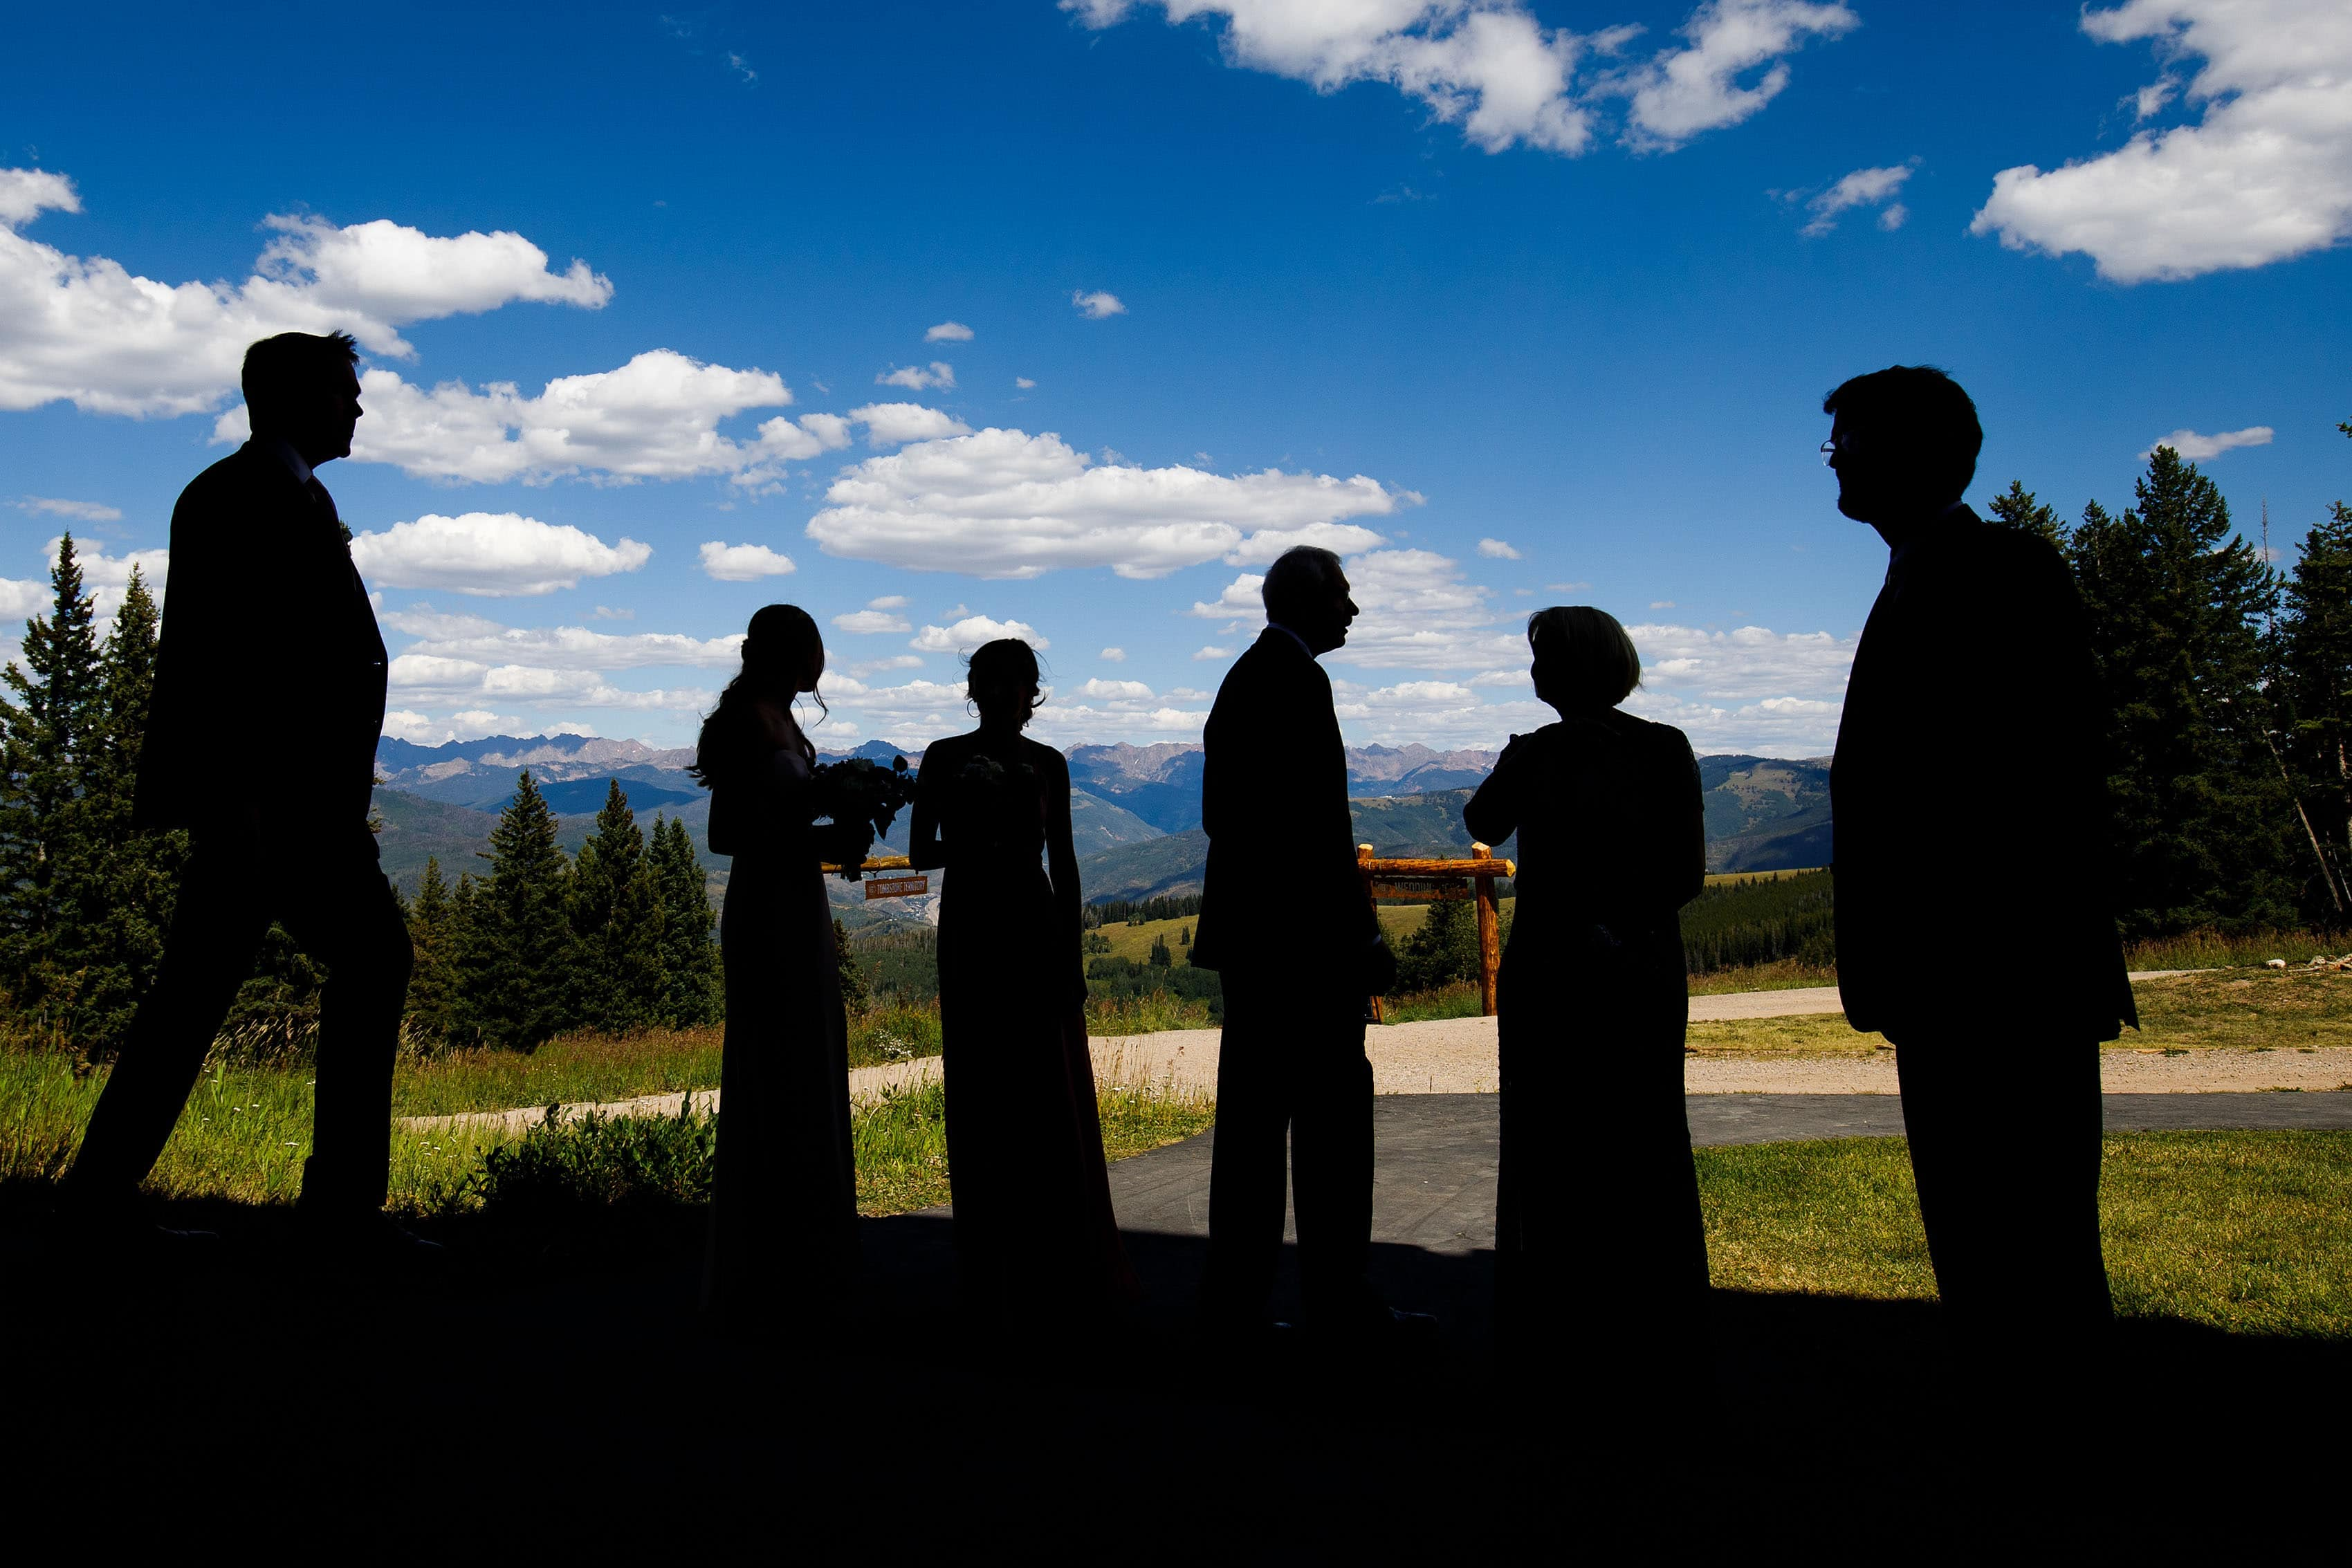 Wedding guests silhouetted at Solitude Station in Beaver Creek